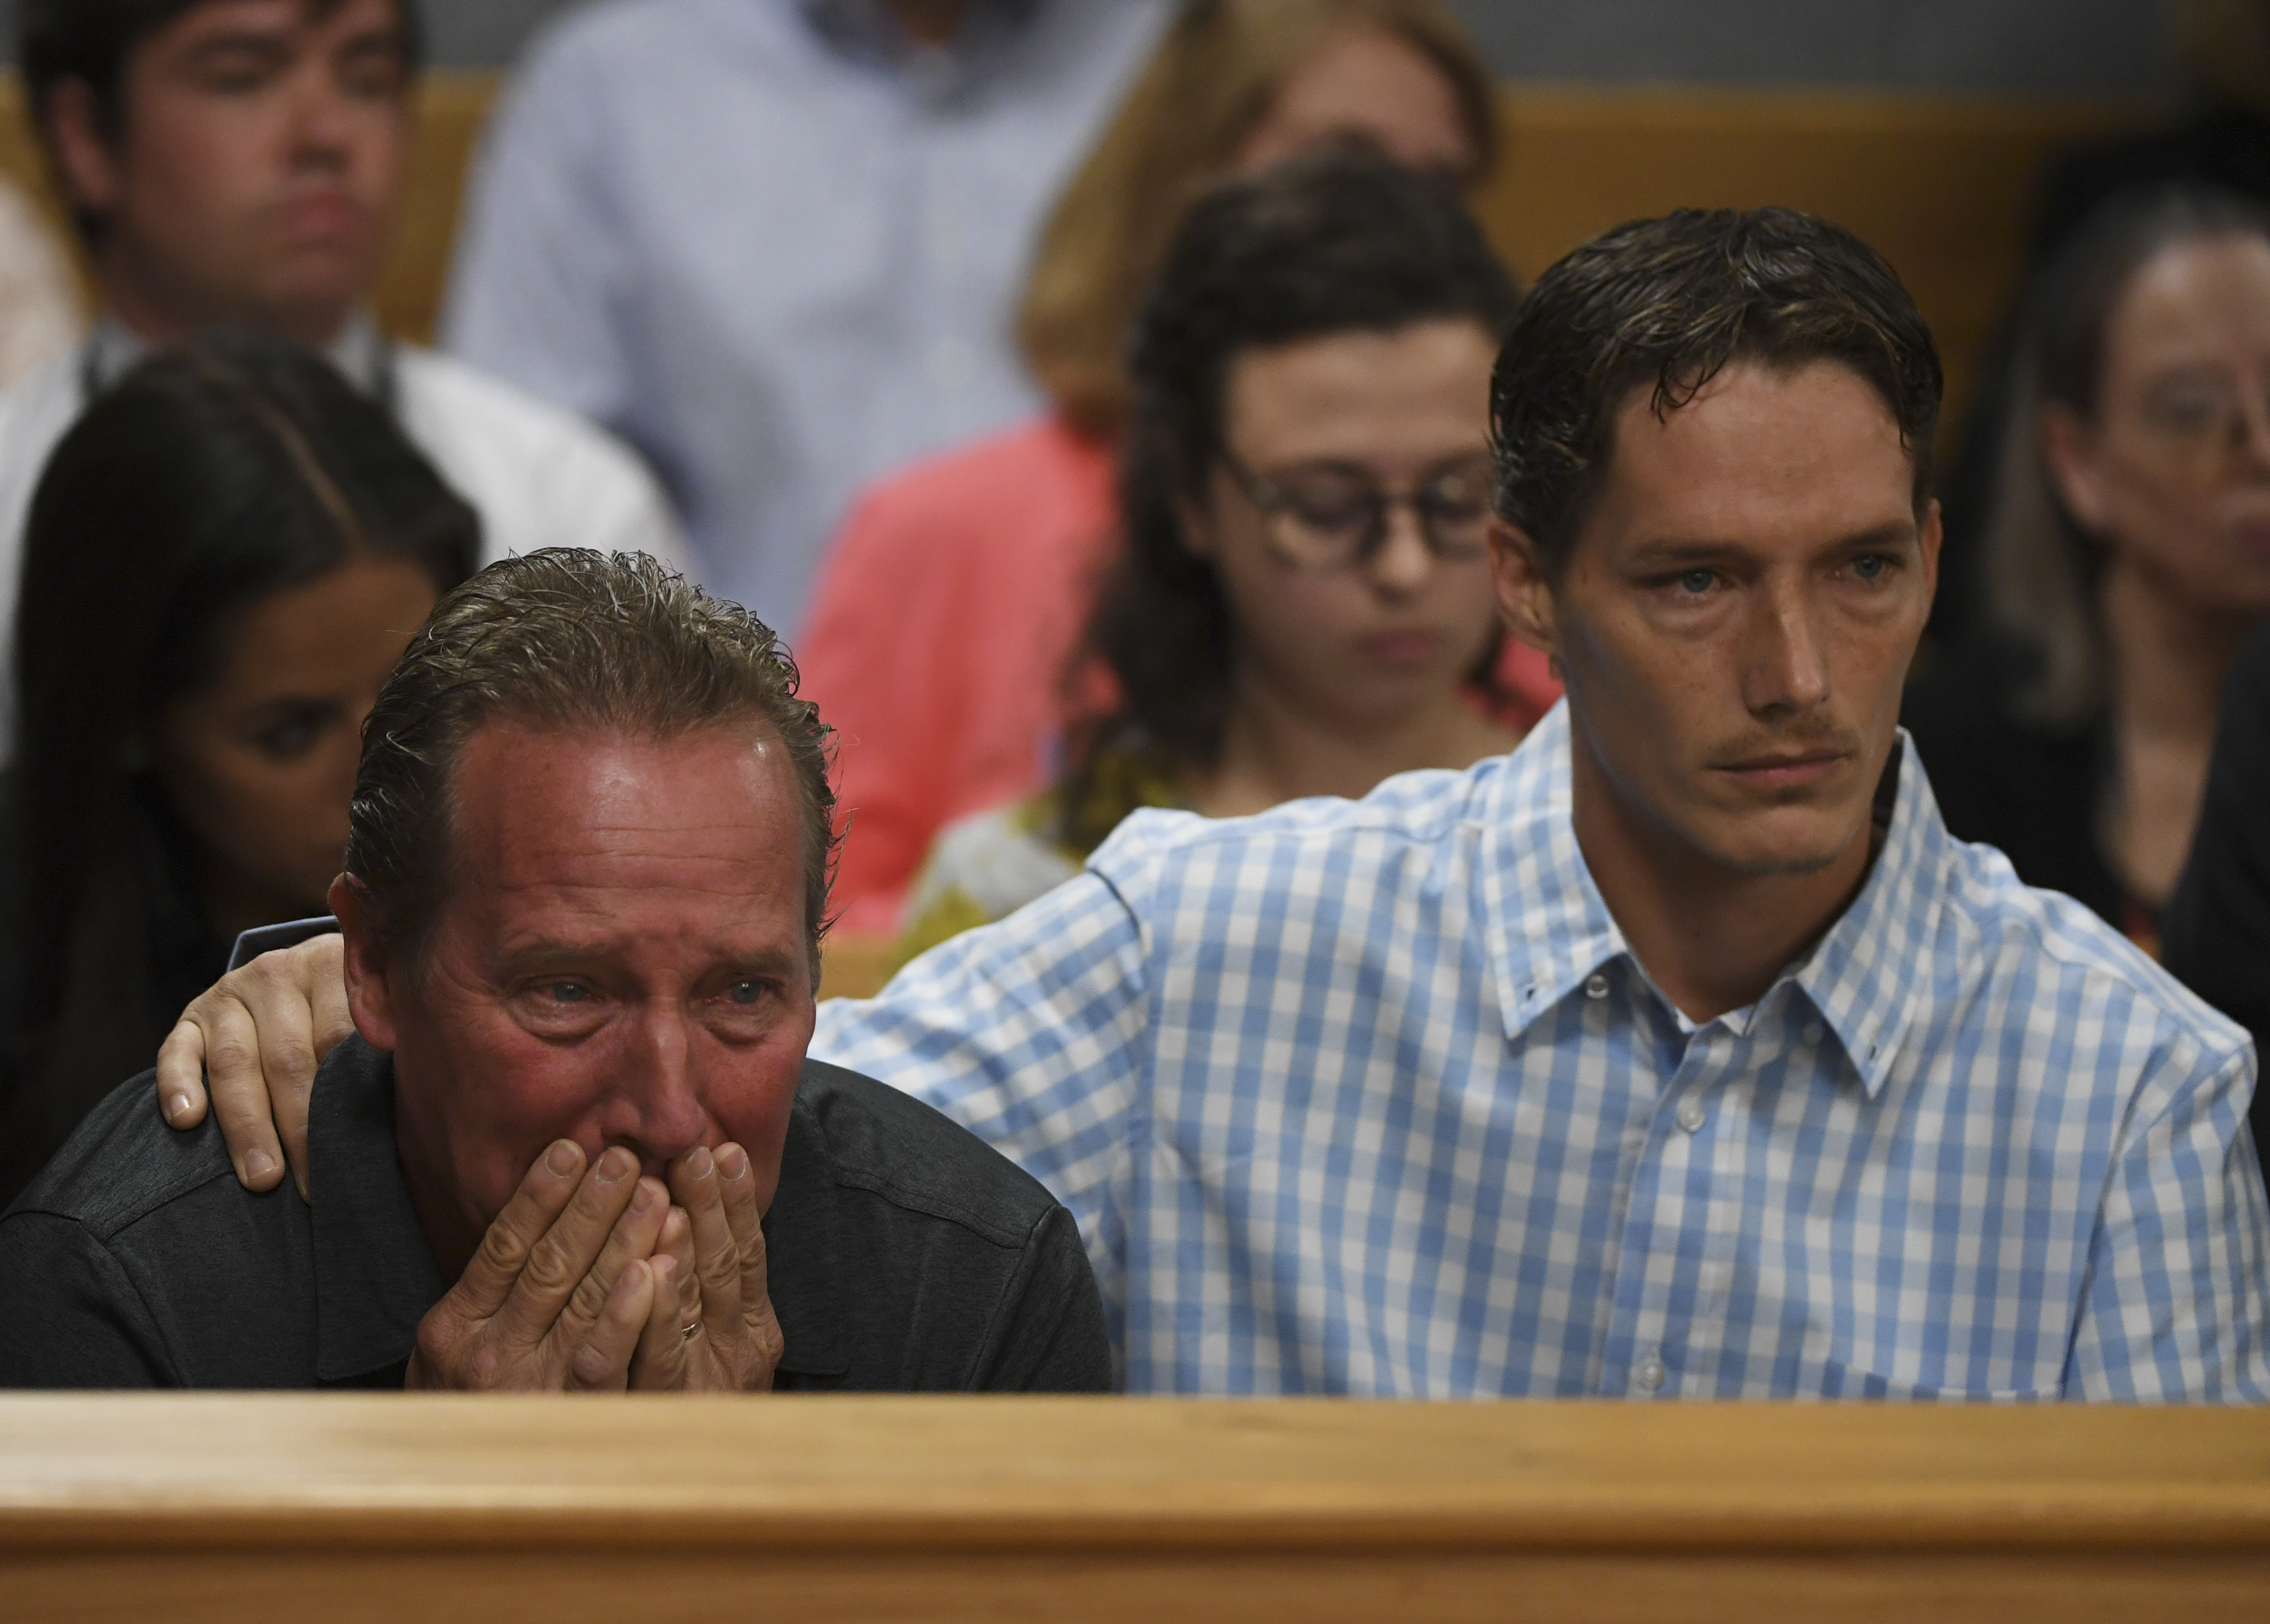 Frank Rzucek the father of Shanann Watts, left, and her brother Frankie Rzucek were in court for Christopher Watts arraignment hearing at the Weld County Courthouse on August 21, 2018, in Greeley, Colorado. (Getty)